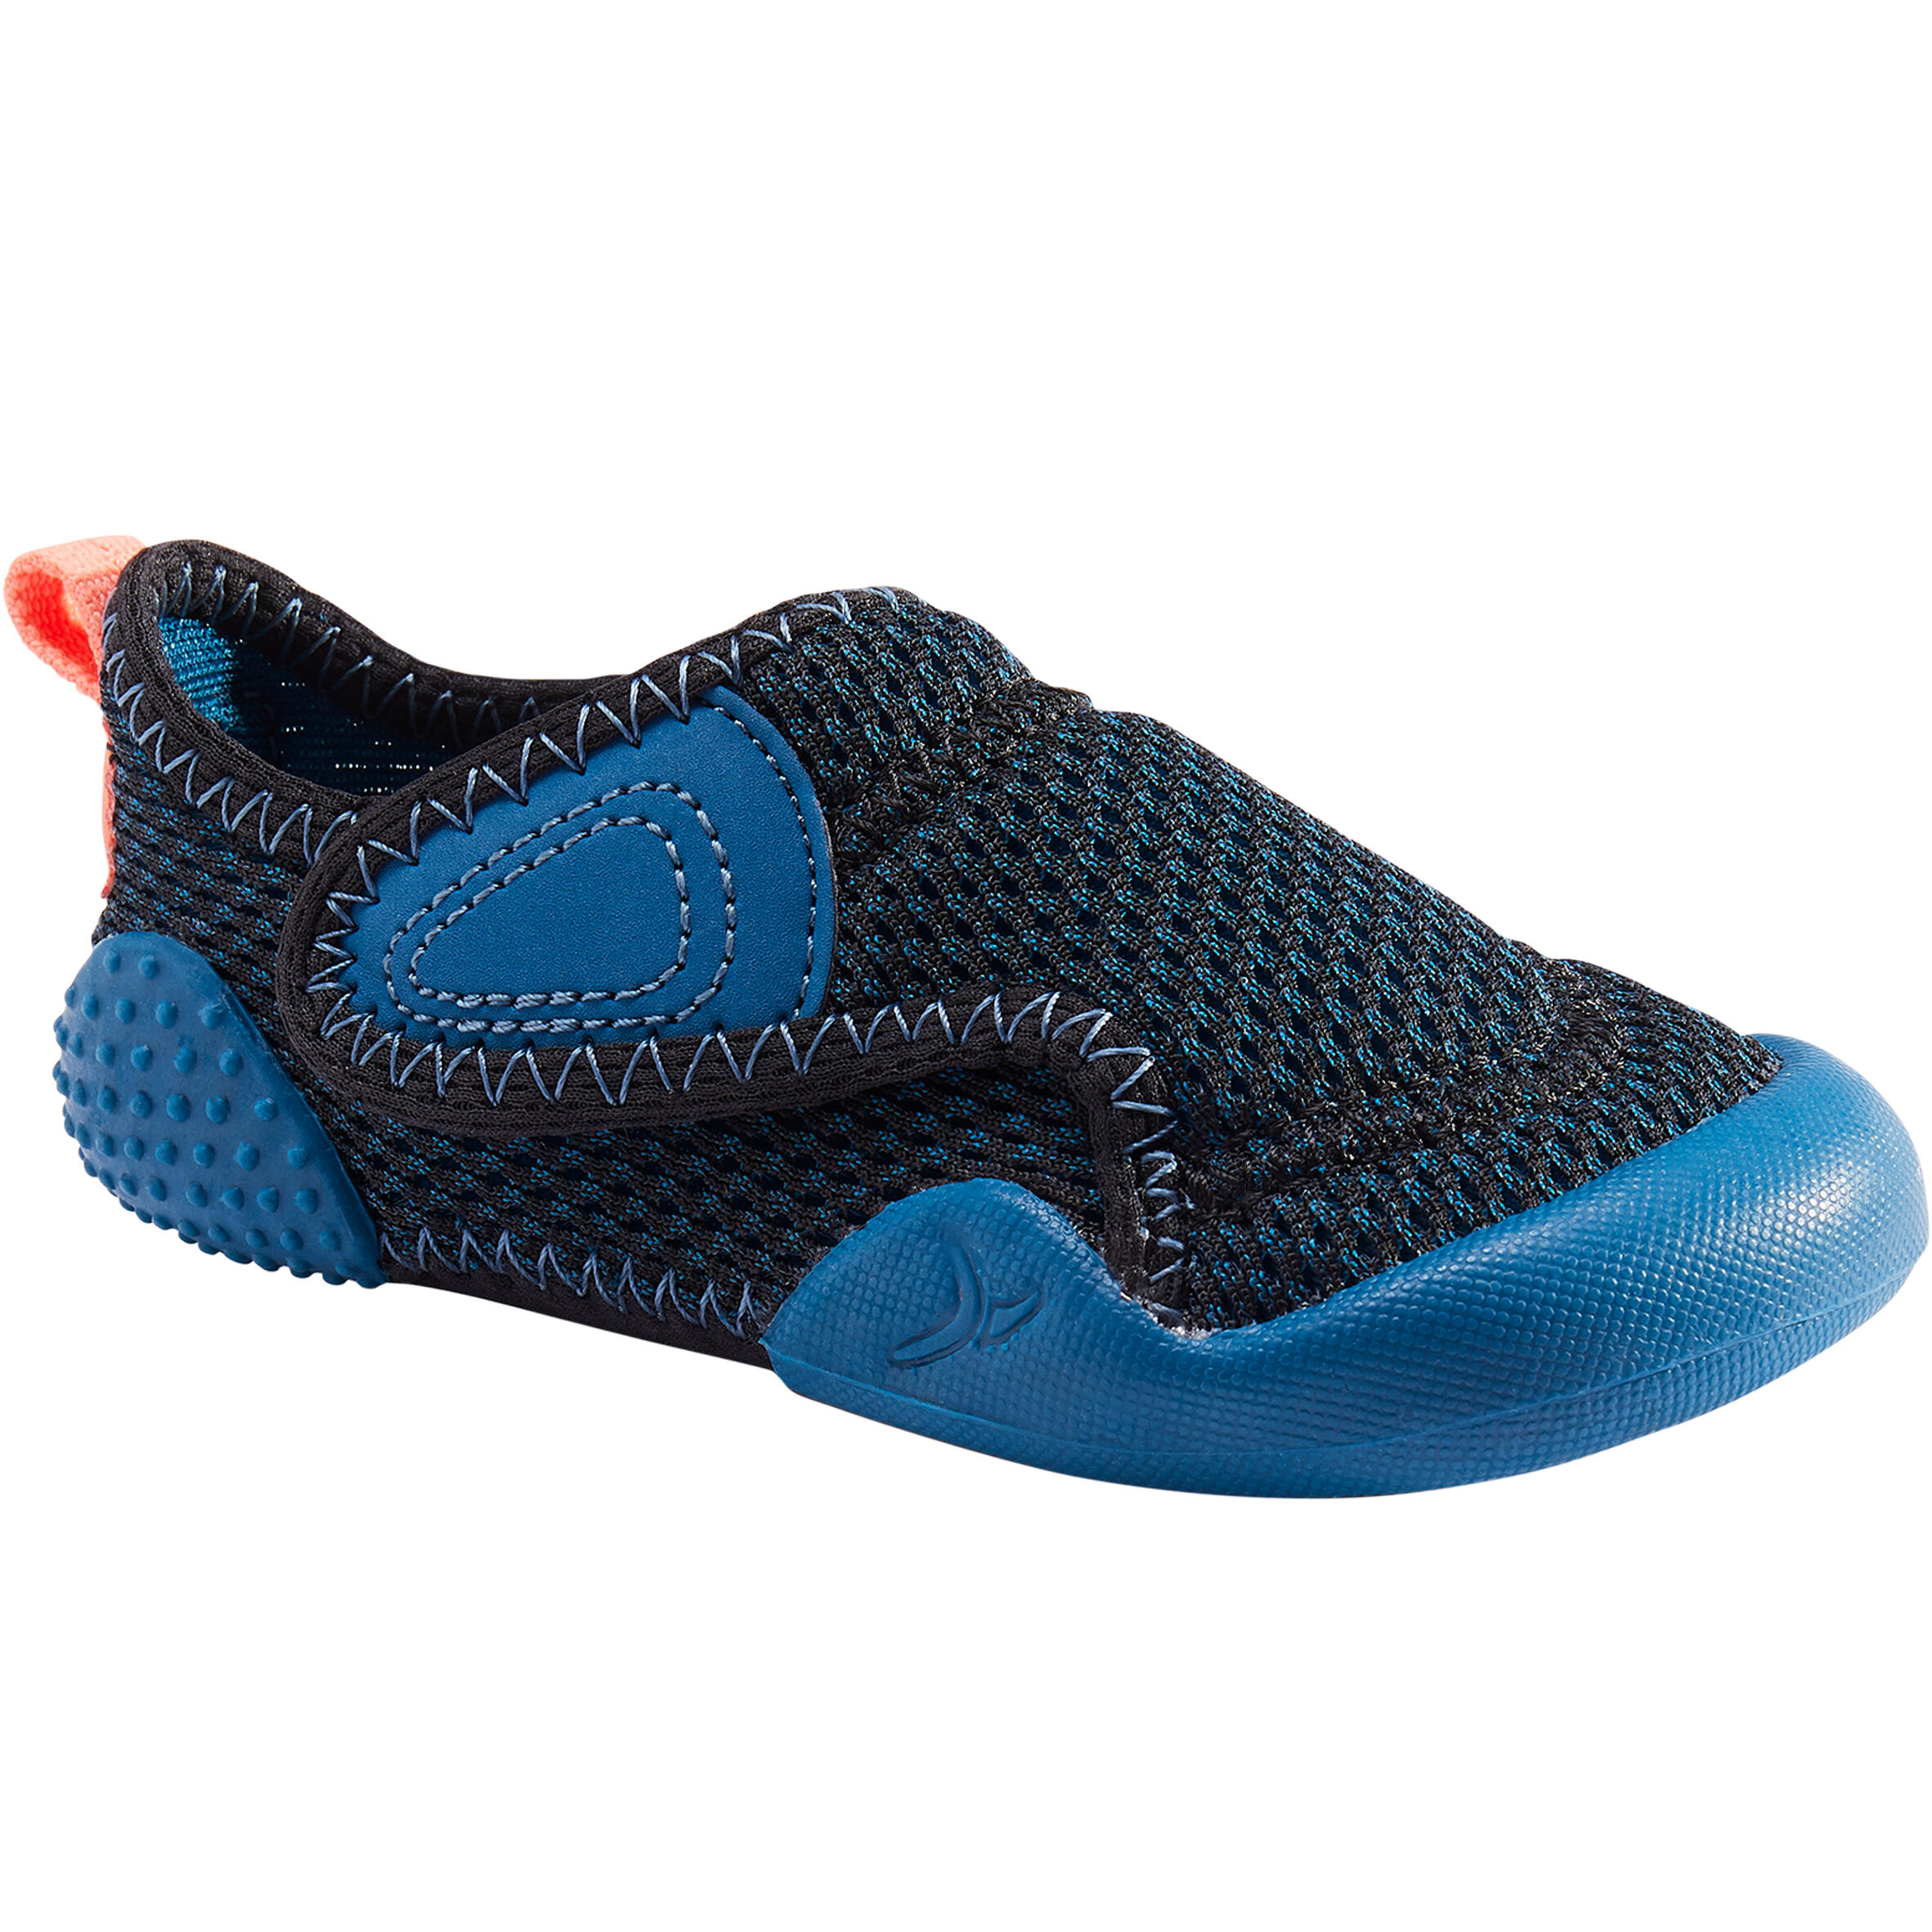 Decathlon Chaussons Bebe Off 68 Arpconsulting In